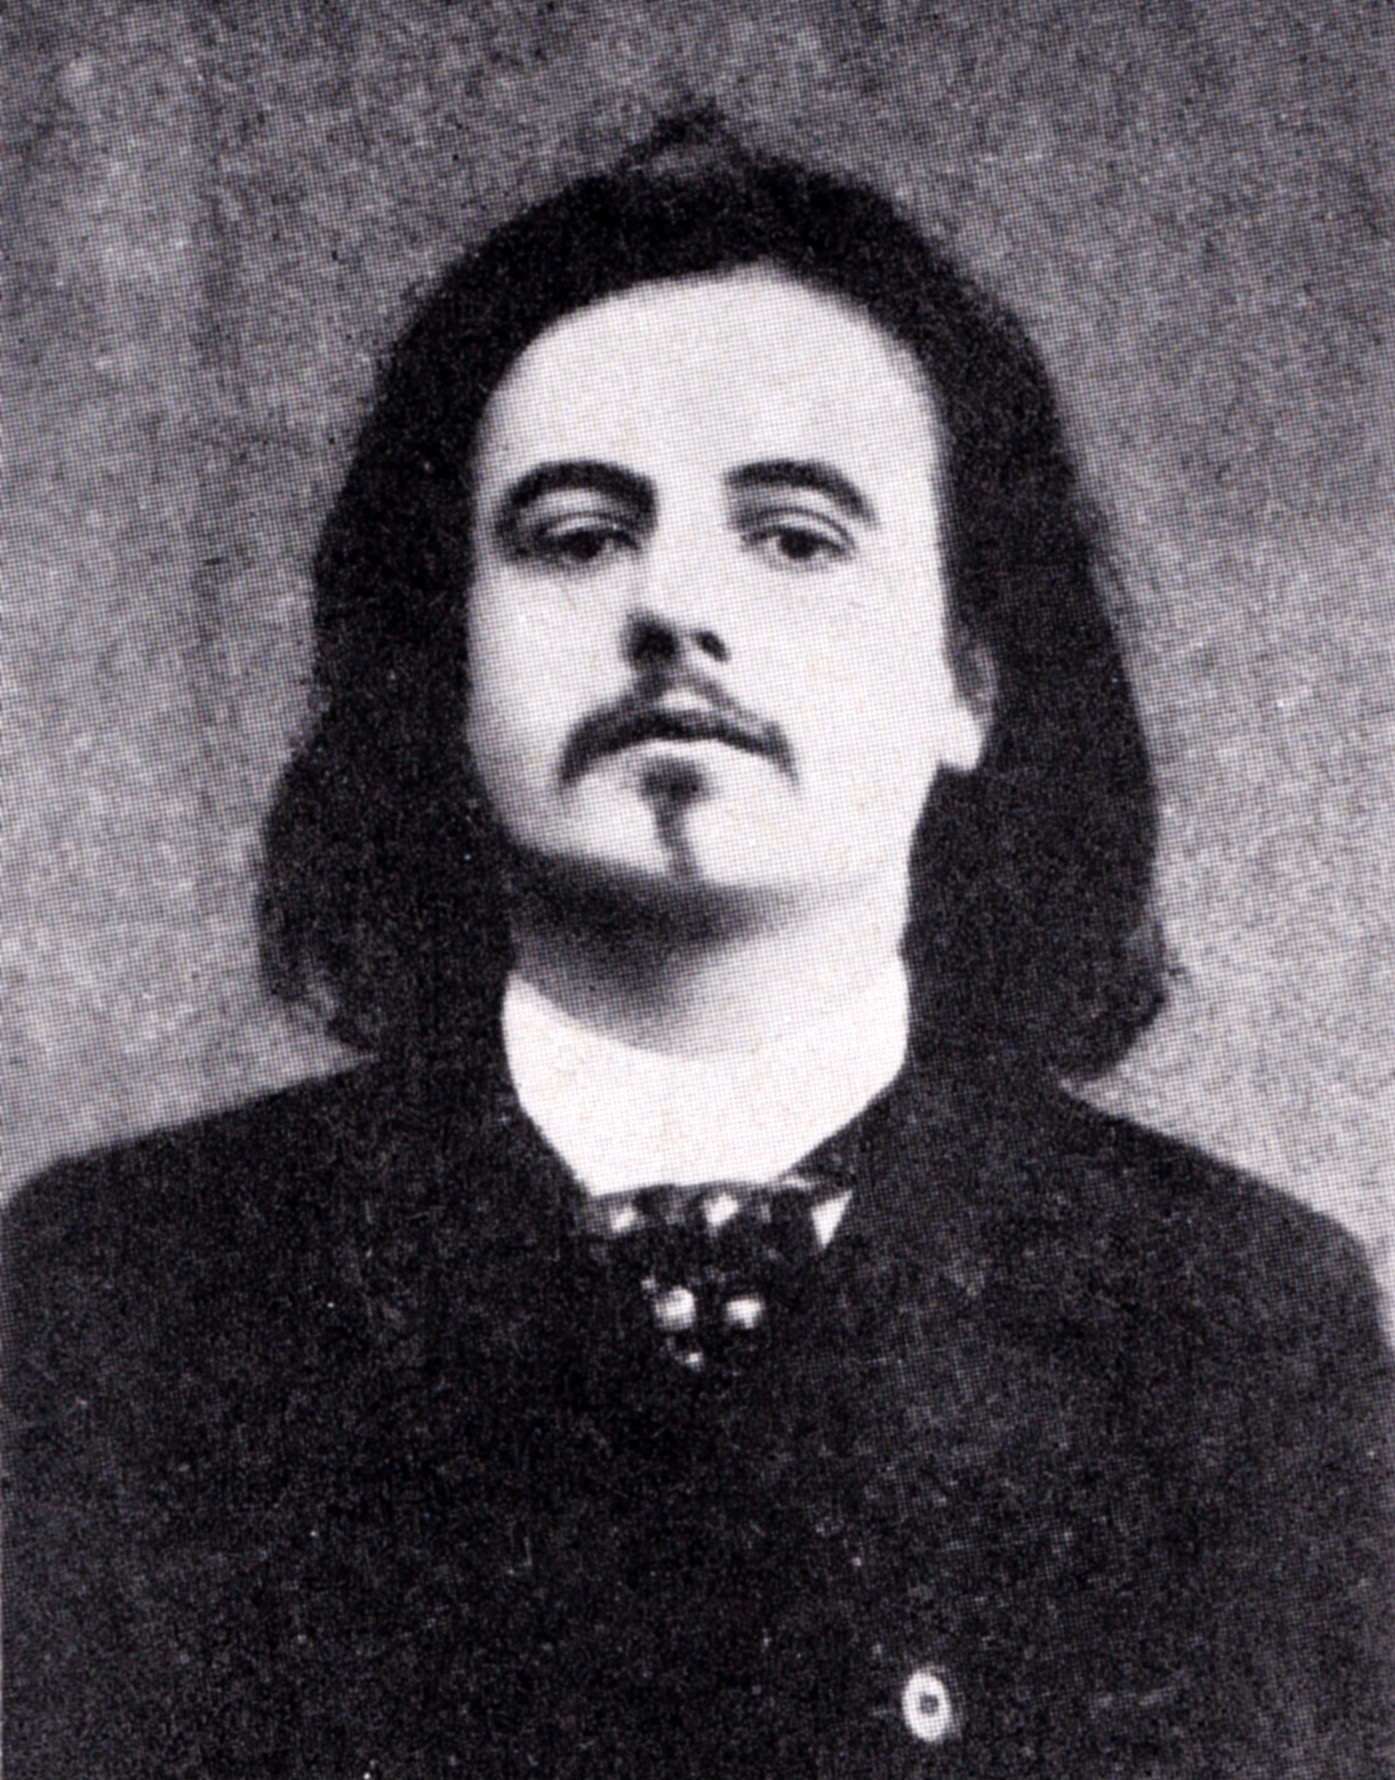 Long before Apple's 'Think Different' ads, there was Alfred Jarry, author of 'Ubu Roi.'